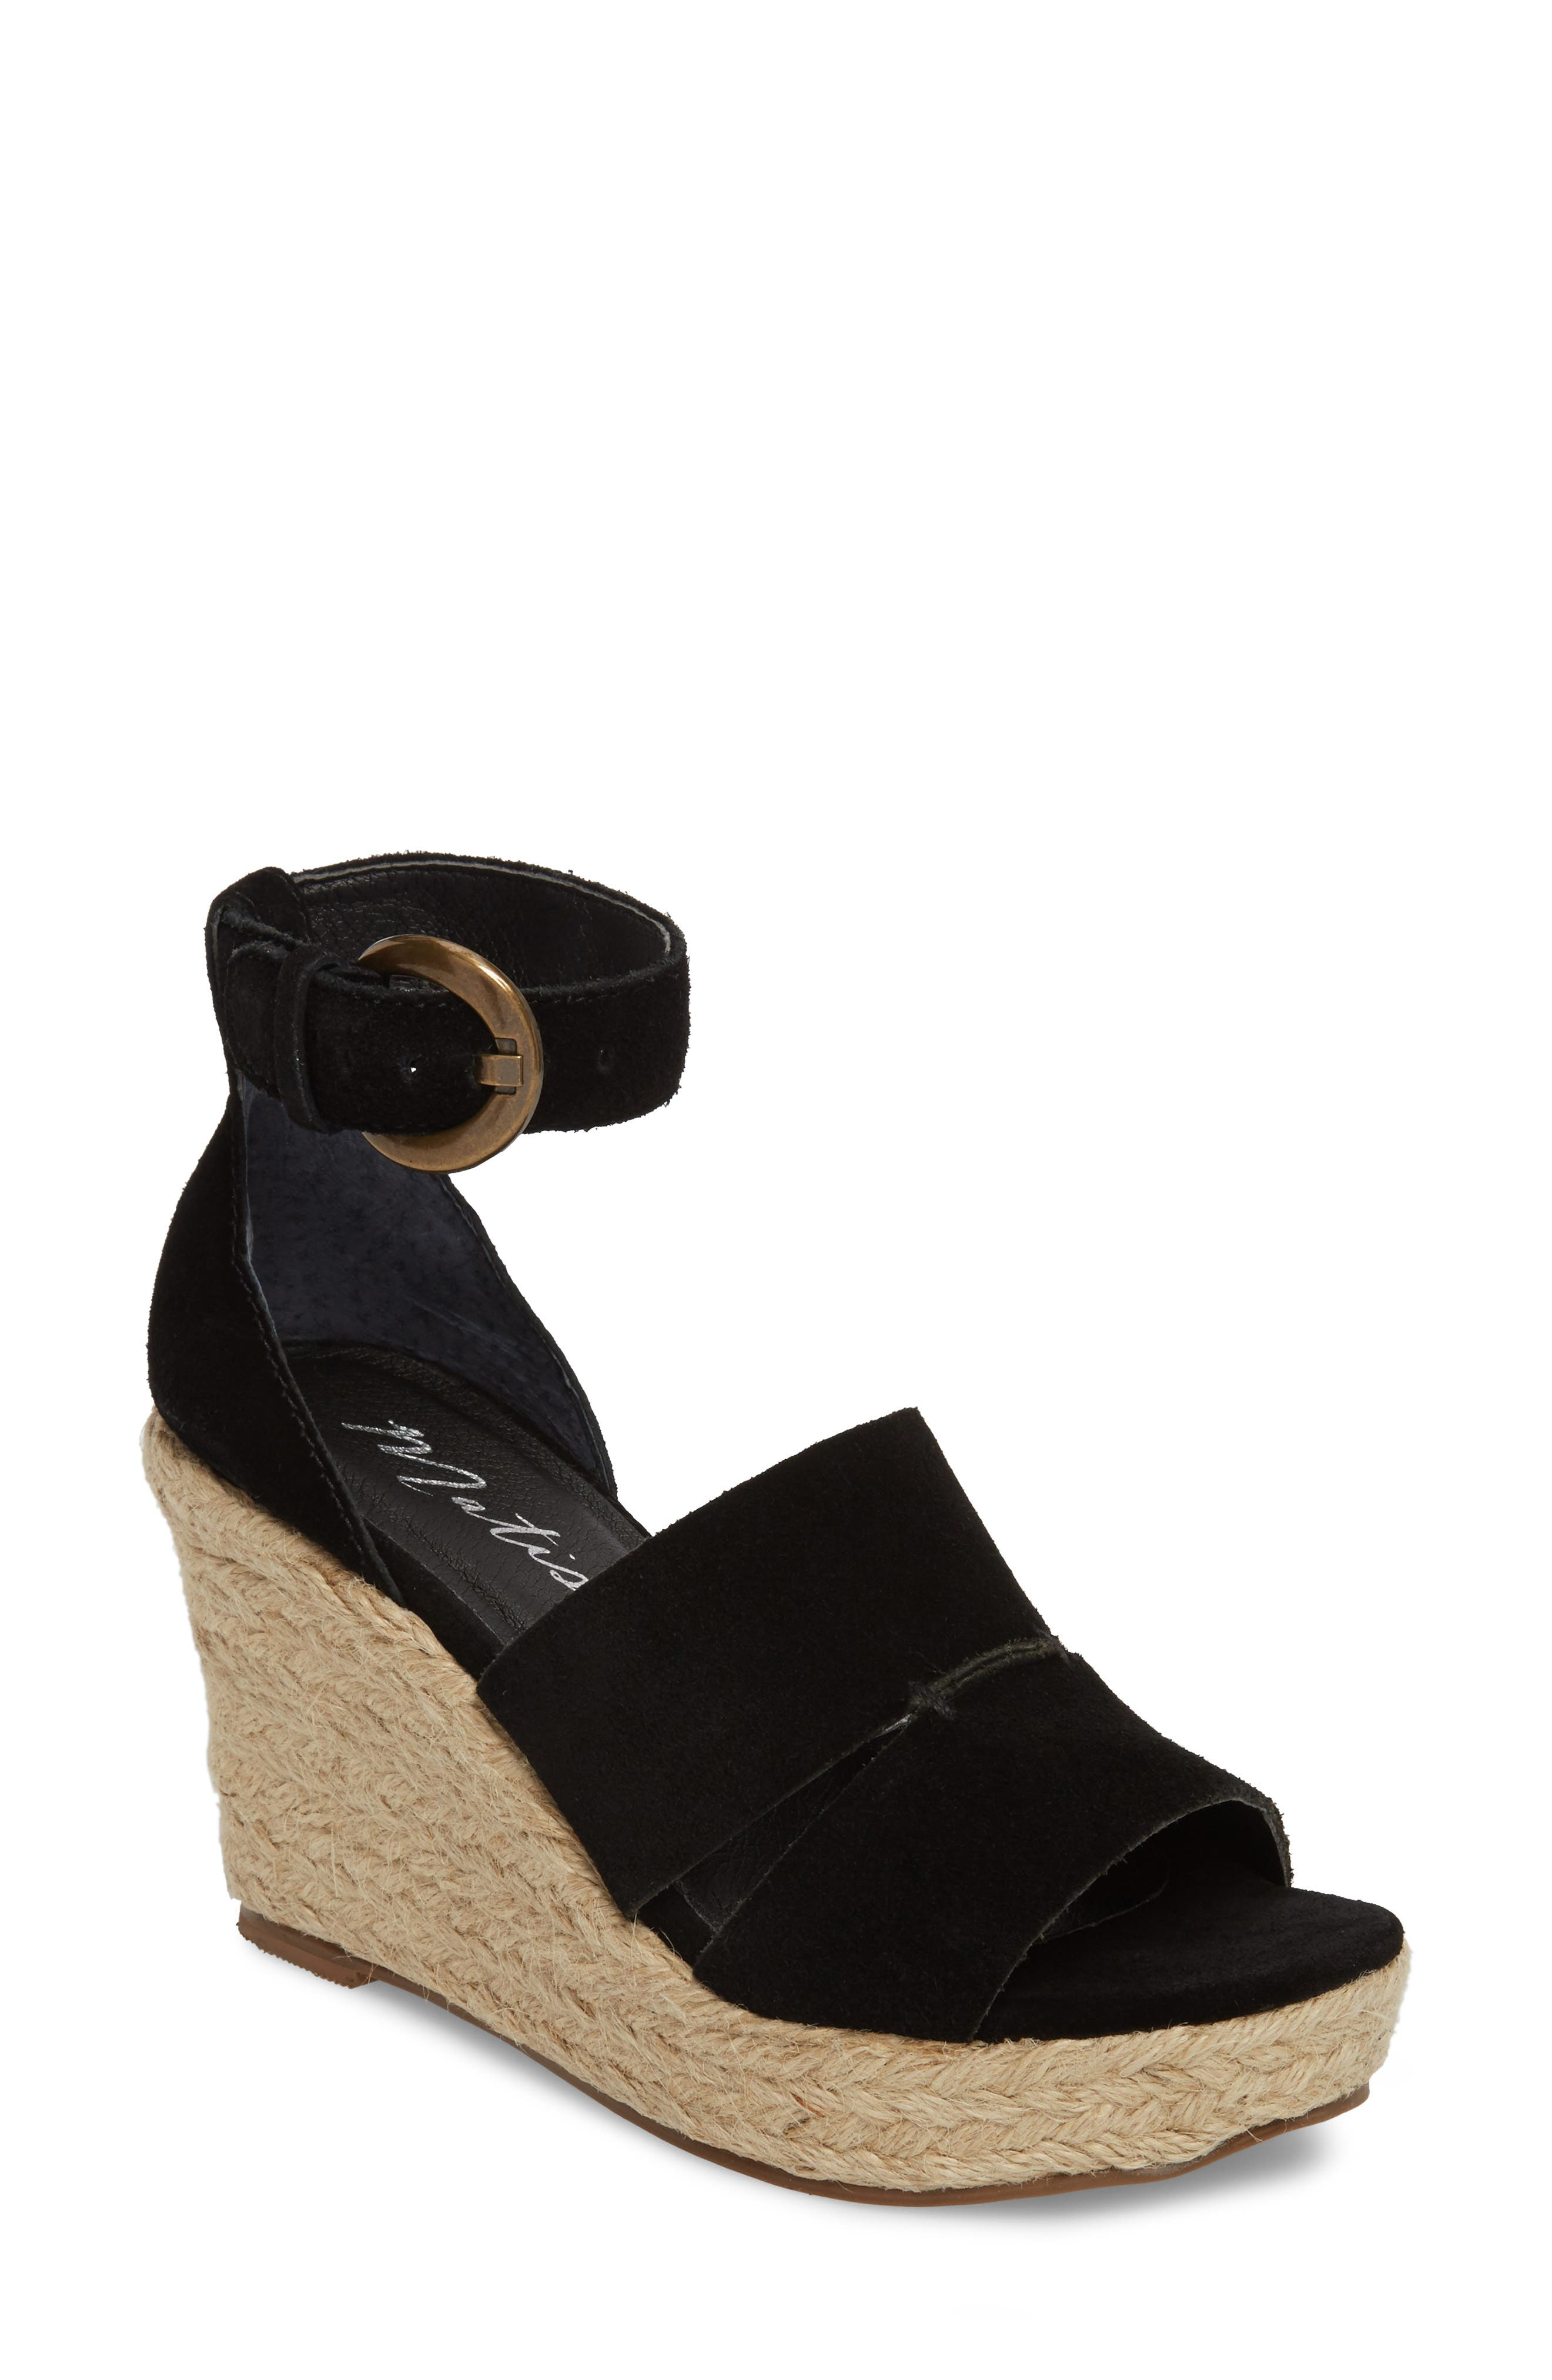 Cha Cha Espadrille Wedge Sandal,                             Main thumbnail 1, color,                             BLACK SUEDE